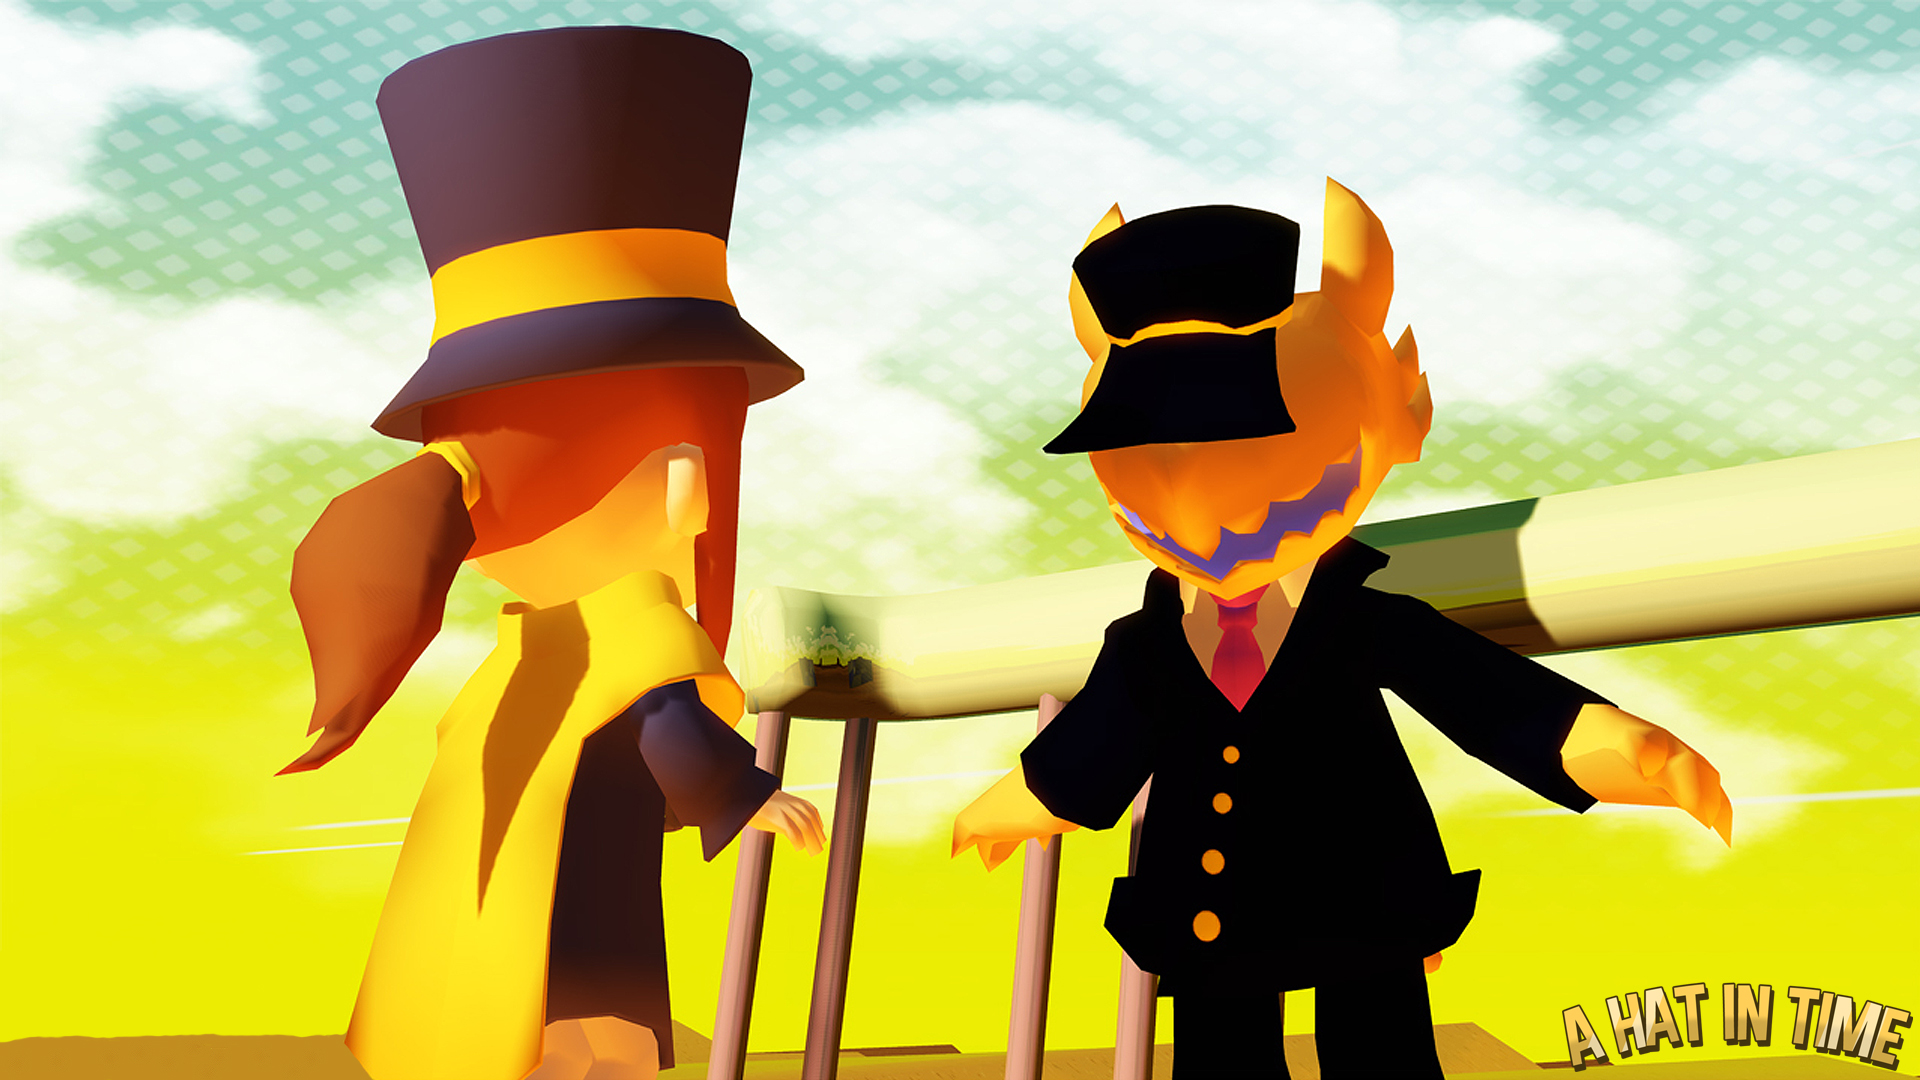 Hat in time conductor boss